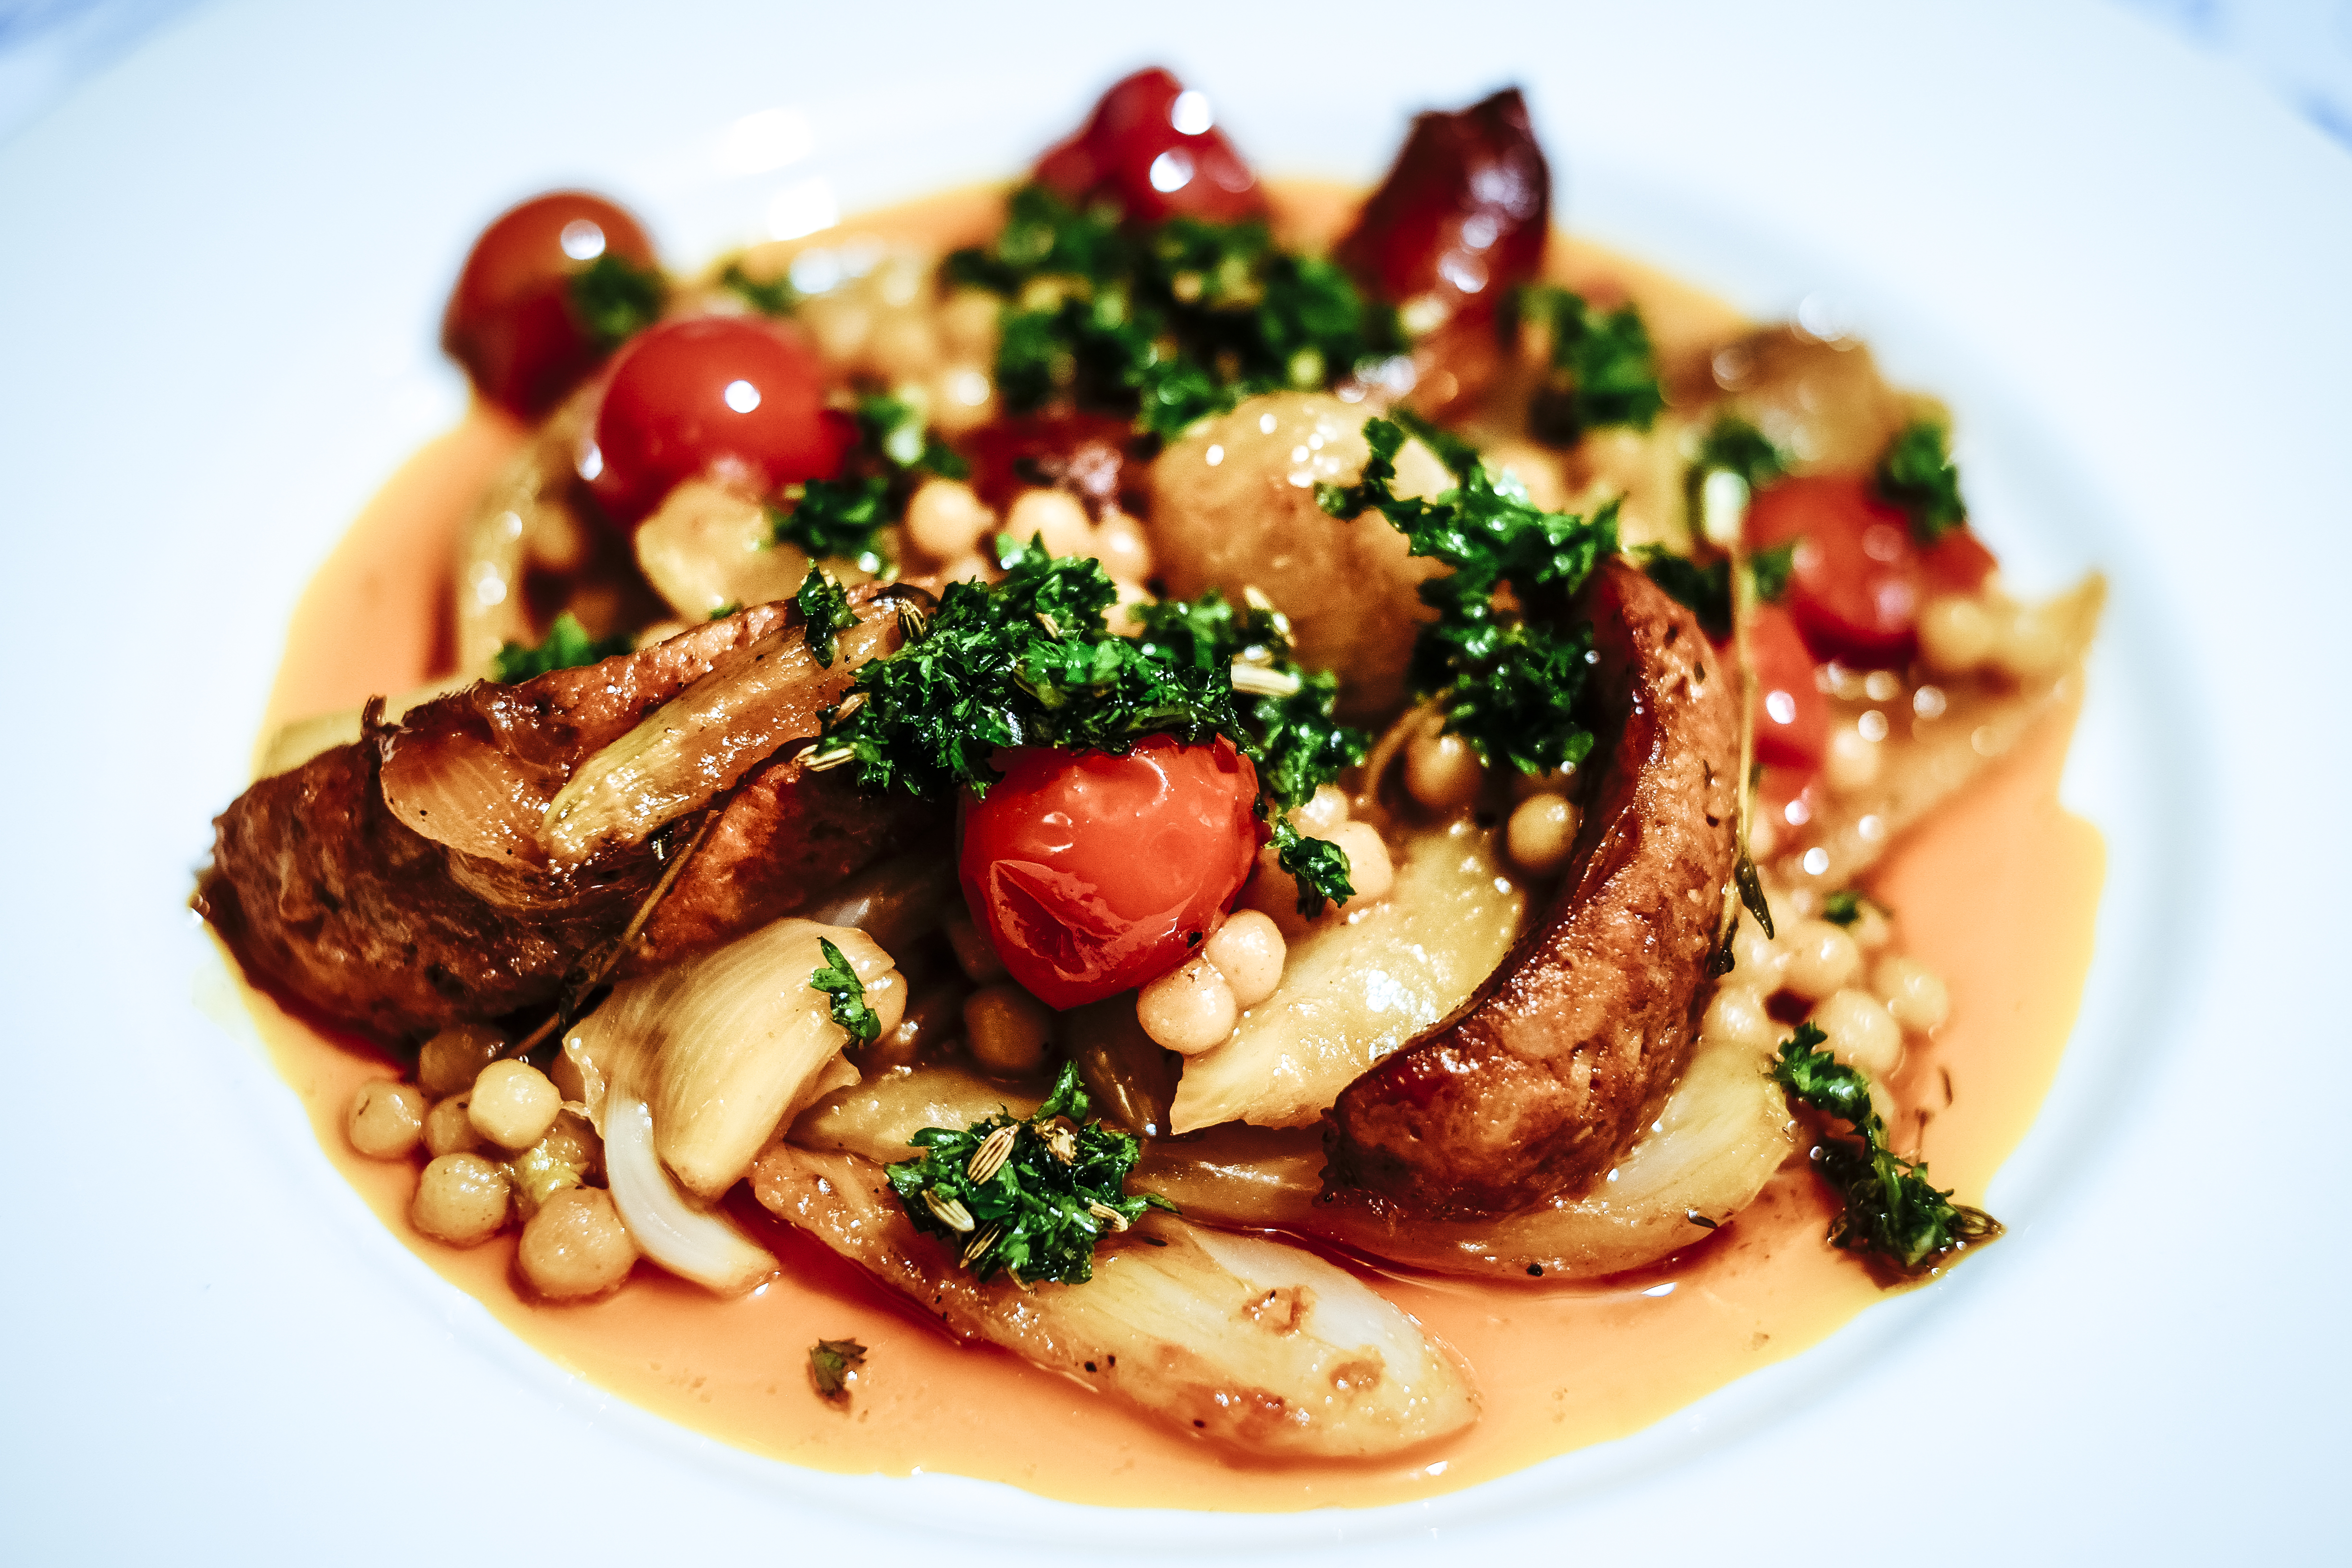 Ottolenghi's stoof